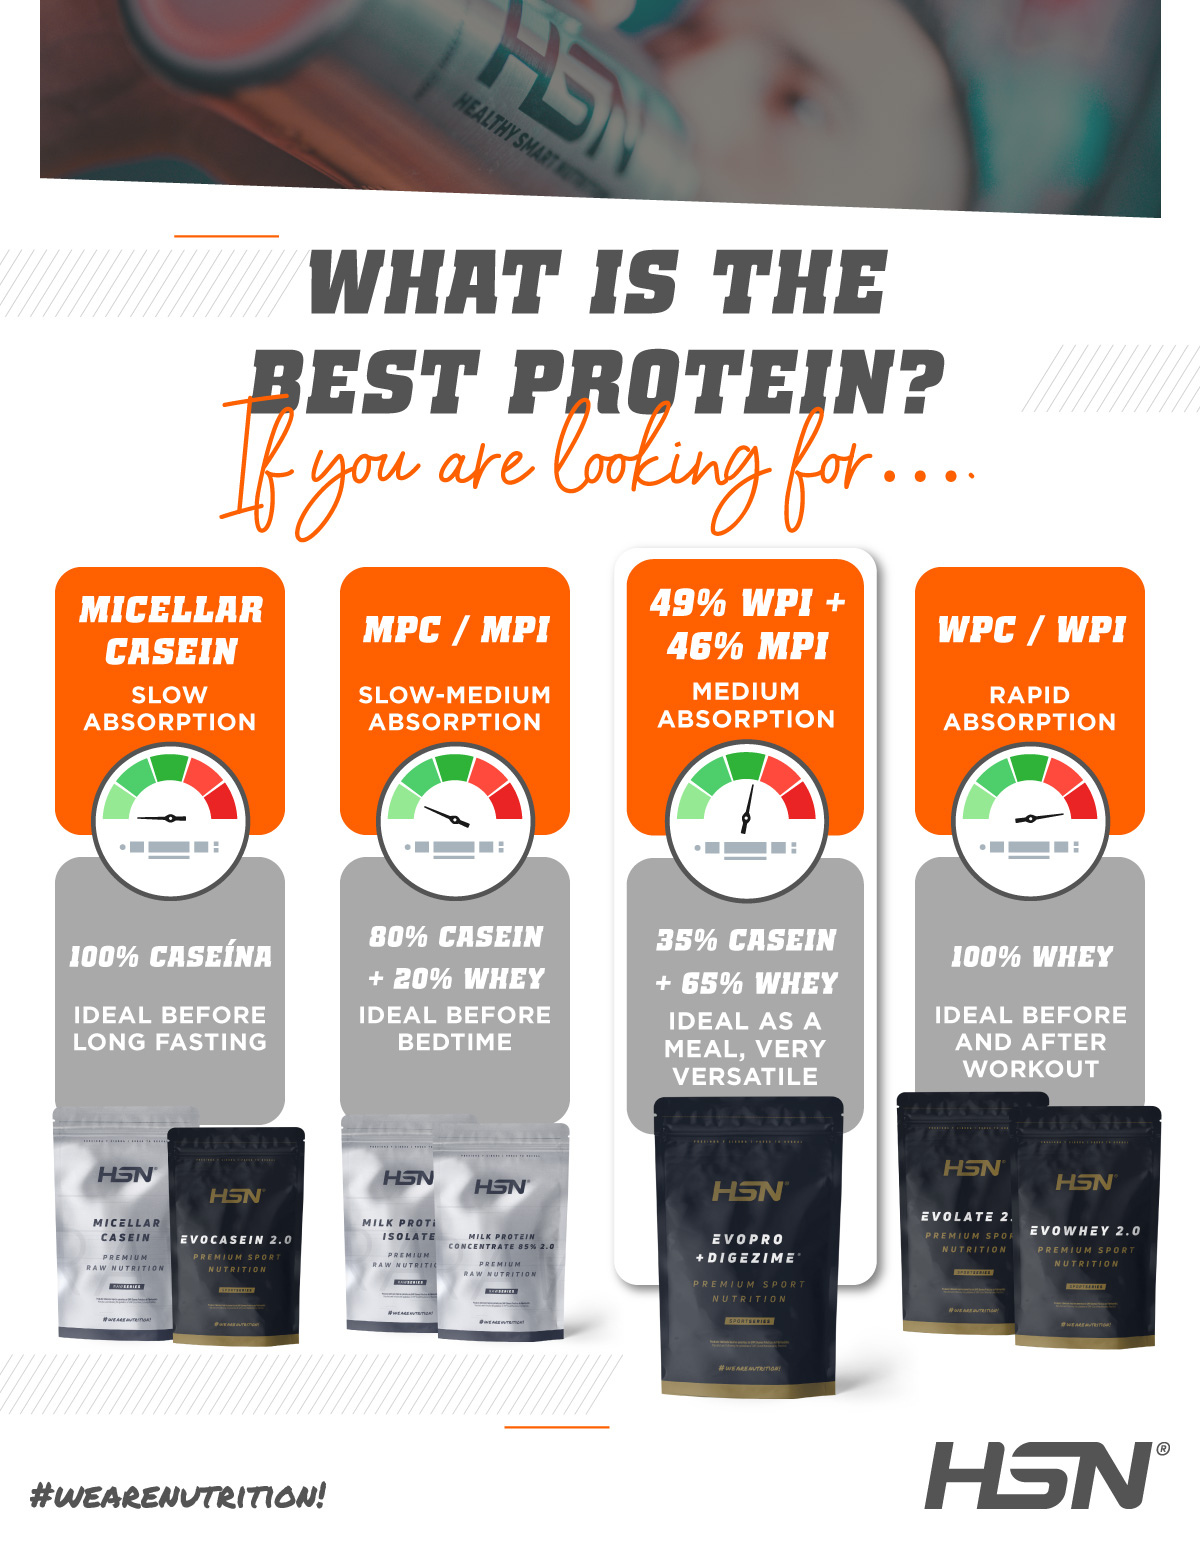 What is the best protein if you are looking for